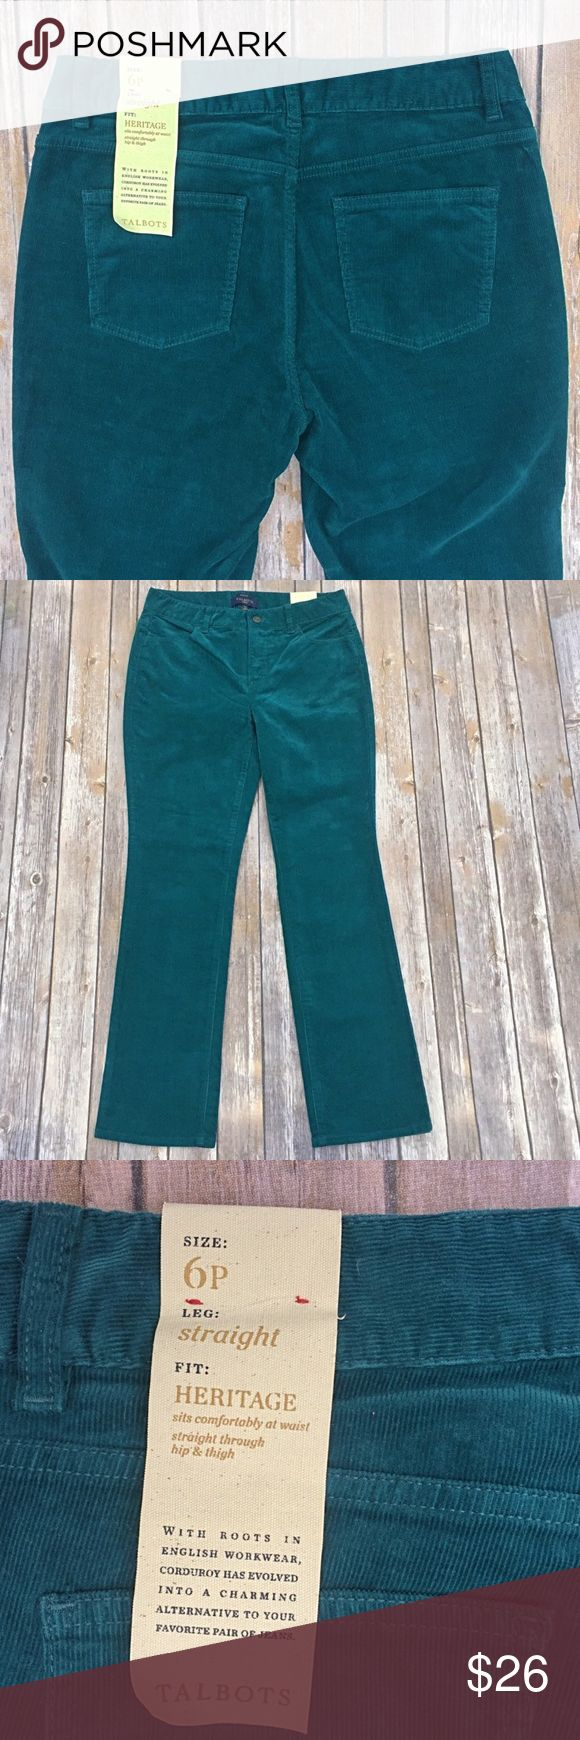 NWT Talbots bright teal corduroy jeans Awesome pair of brand-new corduroy jeans from Talbots in a beautiful and vibrant blue/green teal color.  Style is 'Heritage', which sits comfortably at the waist and is straight through the hips, thighs, and legs.  Made of 98% cotton / 2% spandex, they do have a fair amount of stretch.  NWT.  Size 6 Petite - see picture for exact measurements. Talbots Pants Straight Leg